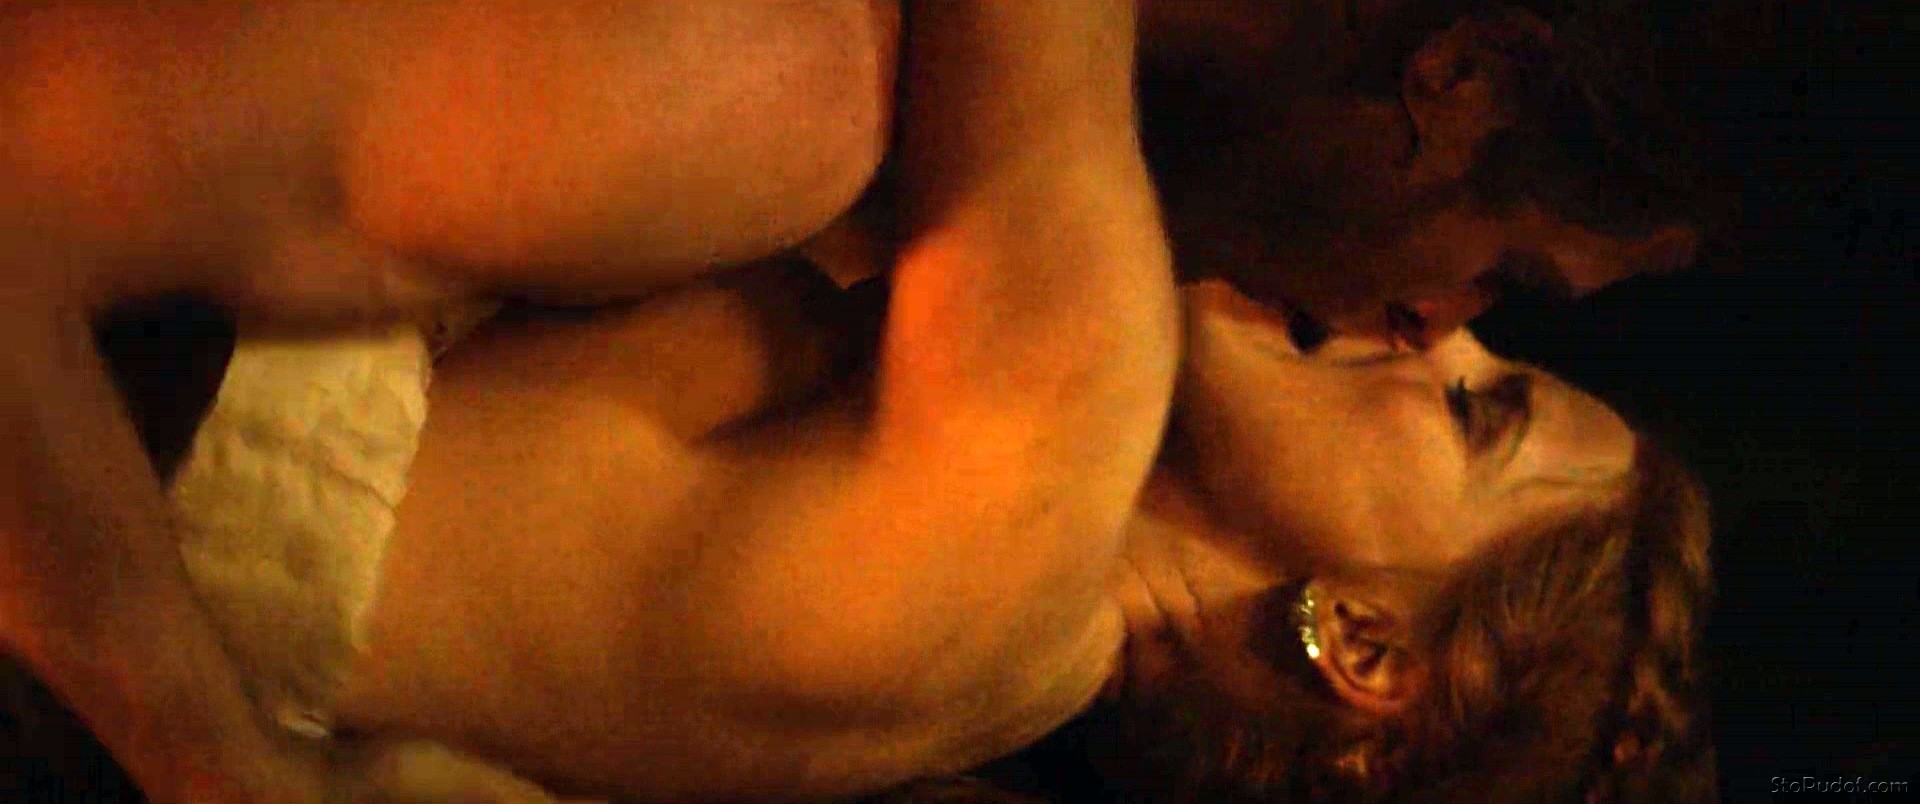 Jessica Chastain nude photos pictures - UkPhotoSafari